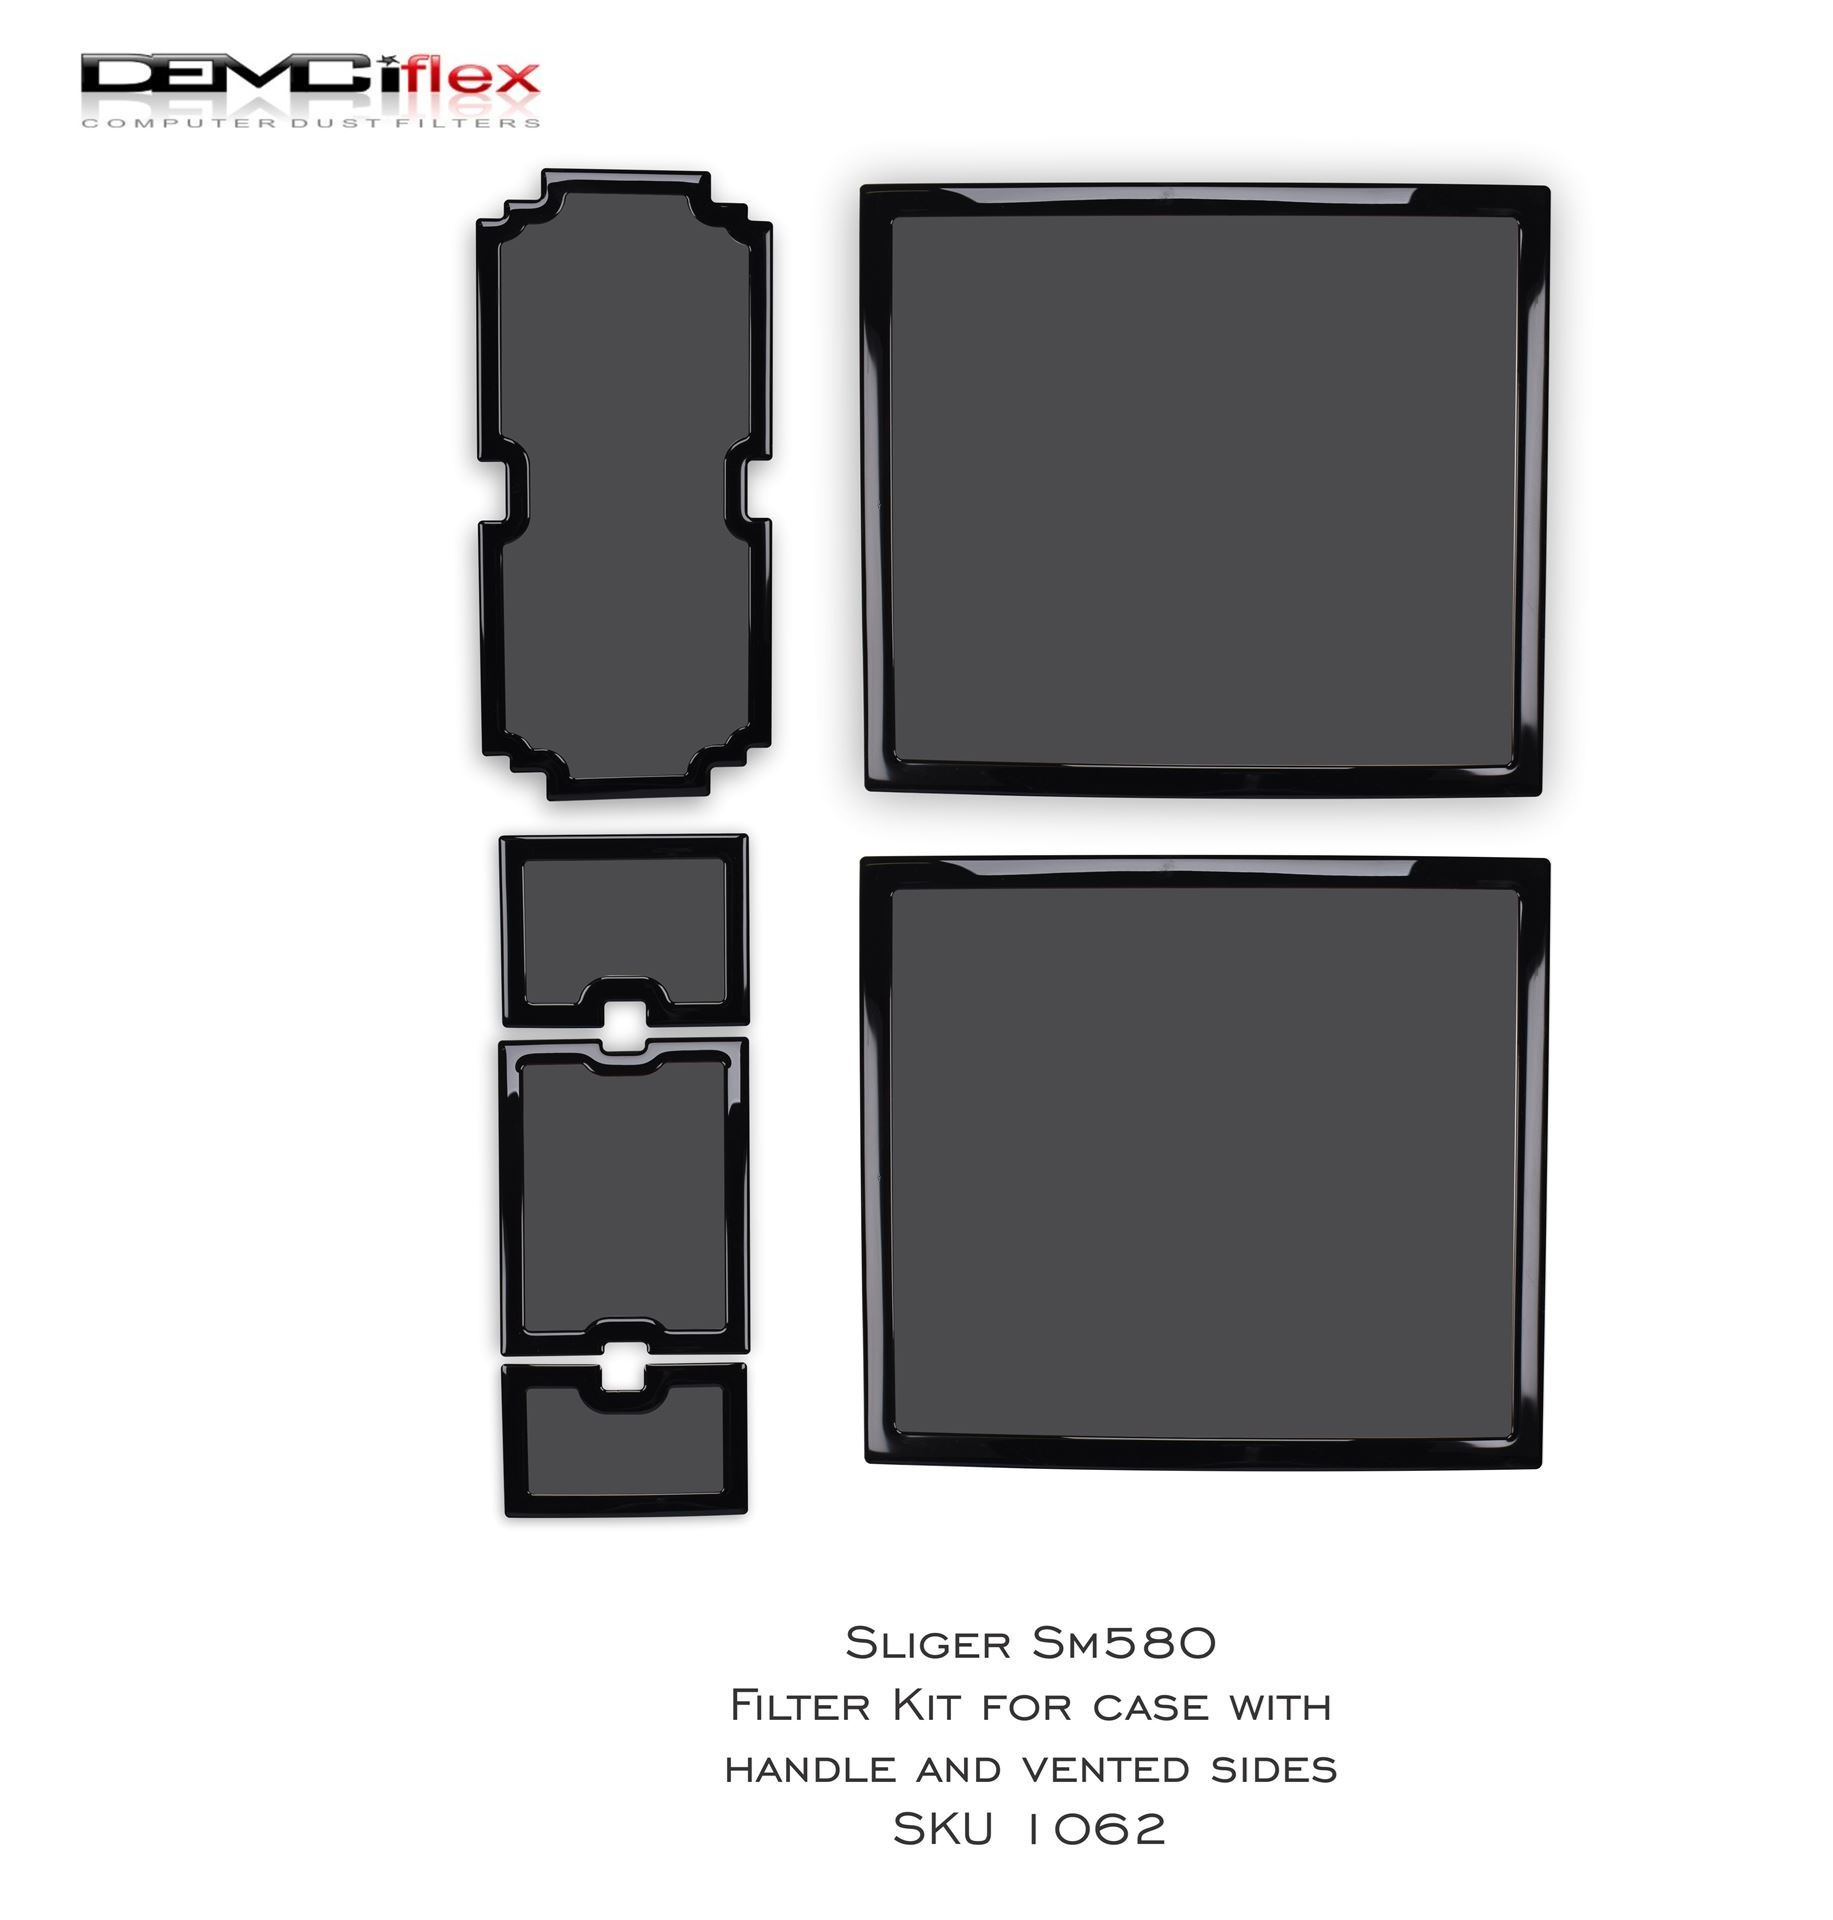 Picture of Sliger SM580 Filter Kit for case with handle & vented sides